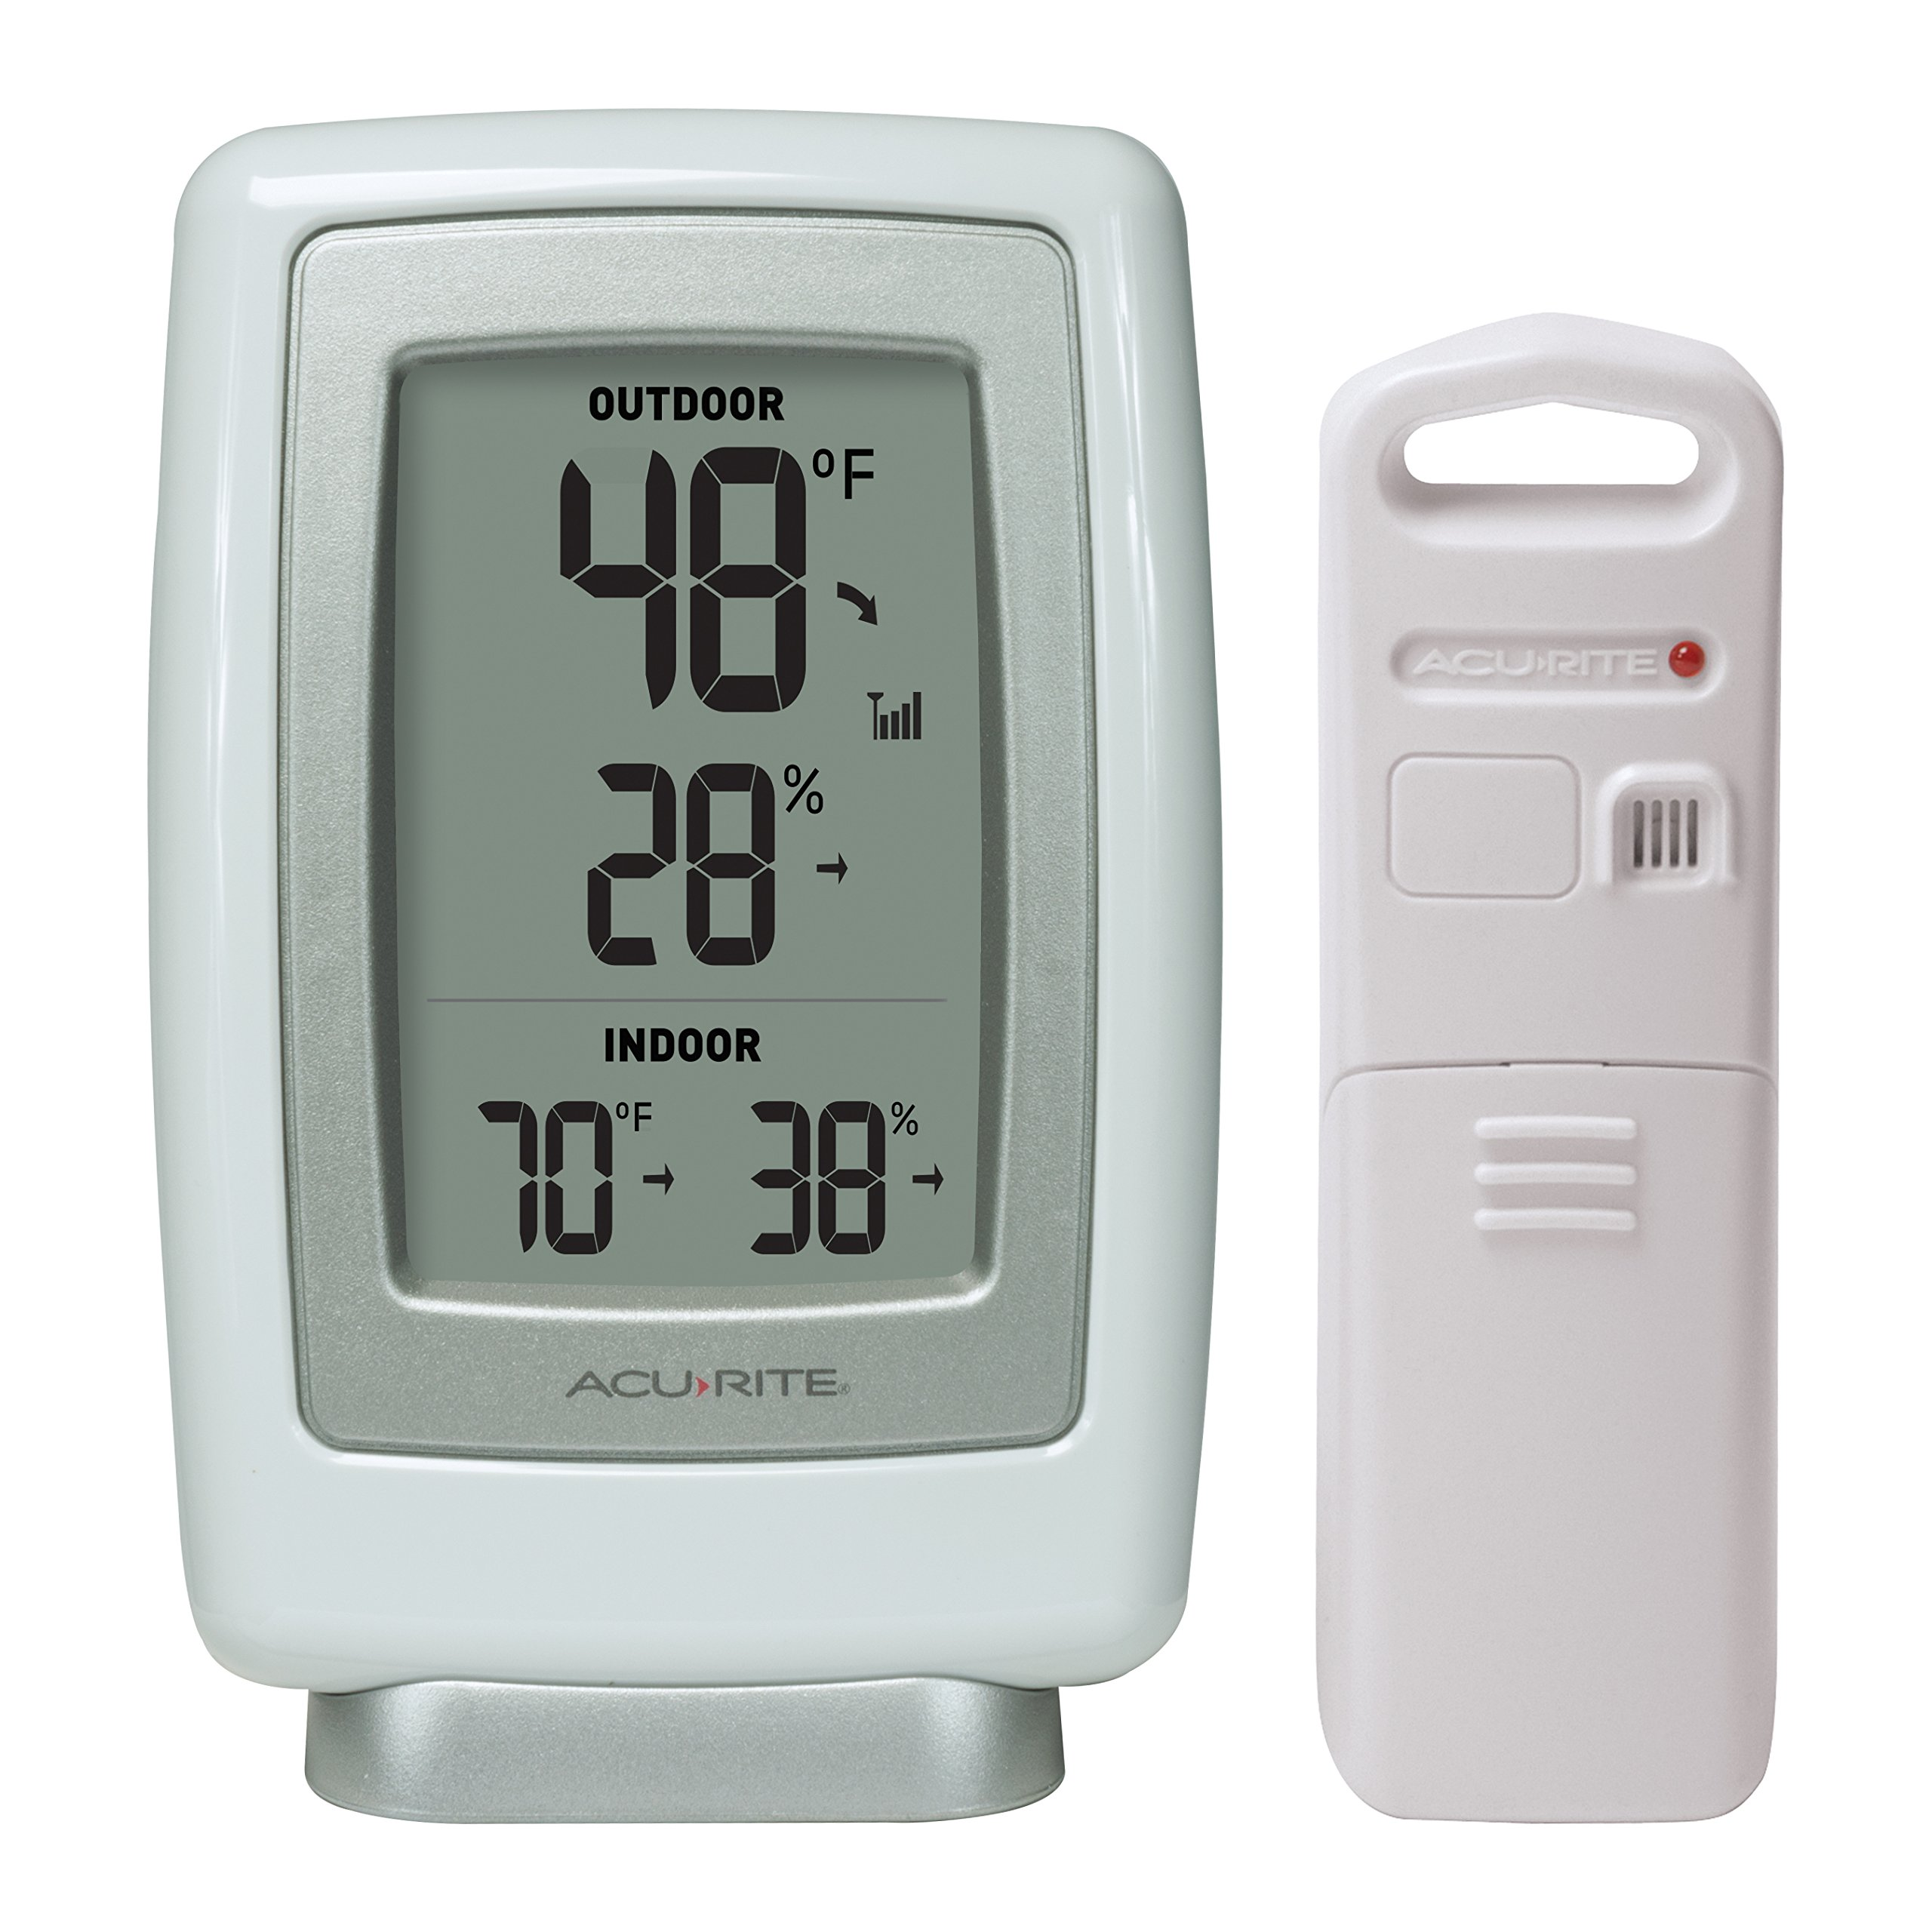 AcuRite 00611 Indoor Outdoor Thermometer with Wireless Temperature Sensor & Hygrometer by AcuRite